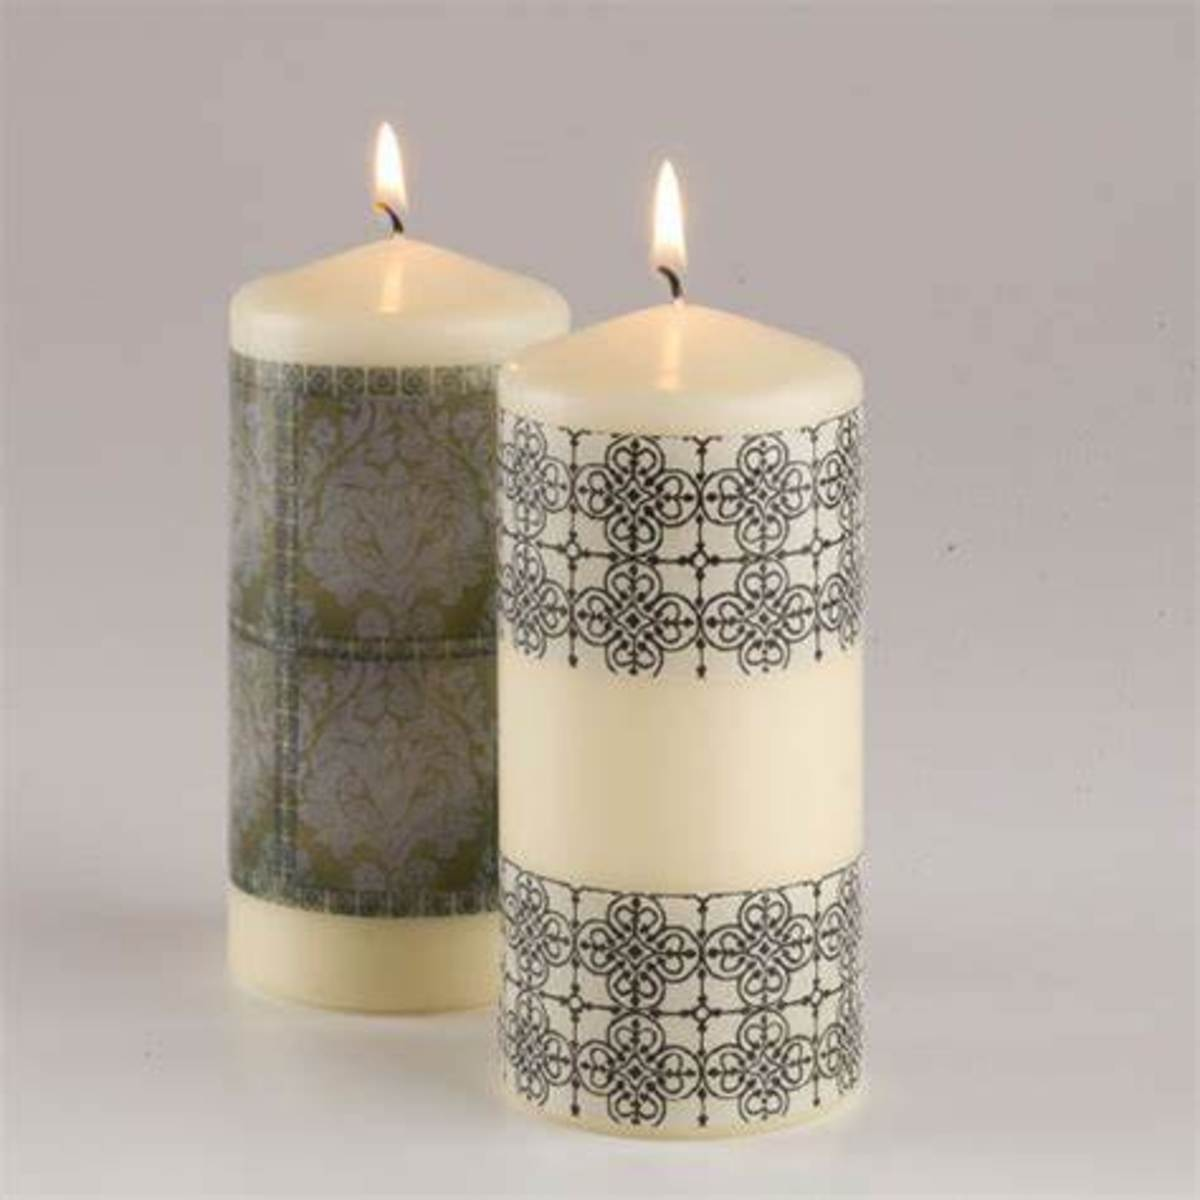 Water slide paper can be used to decorate custom candles